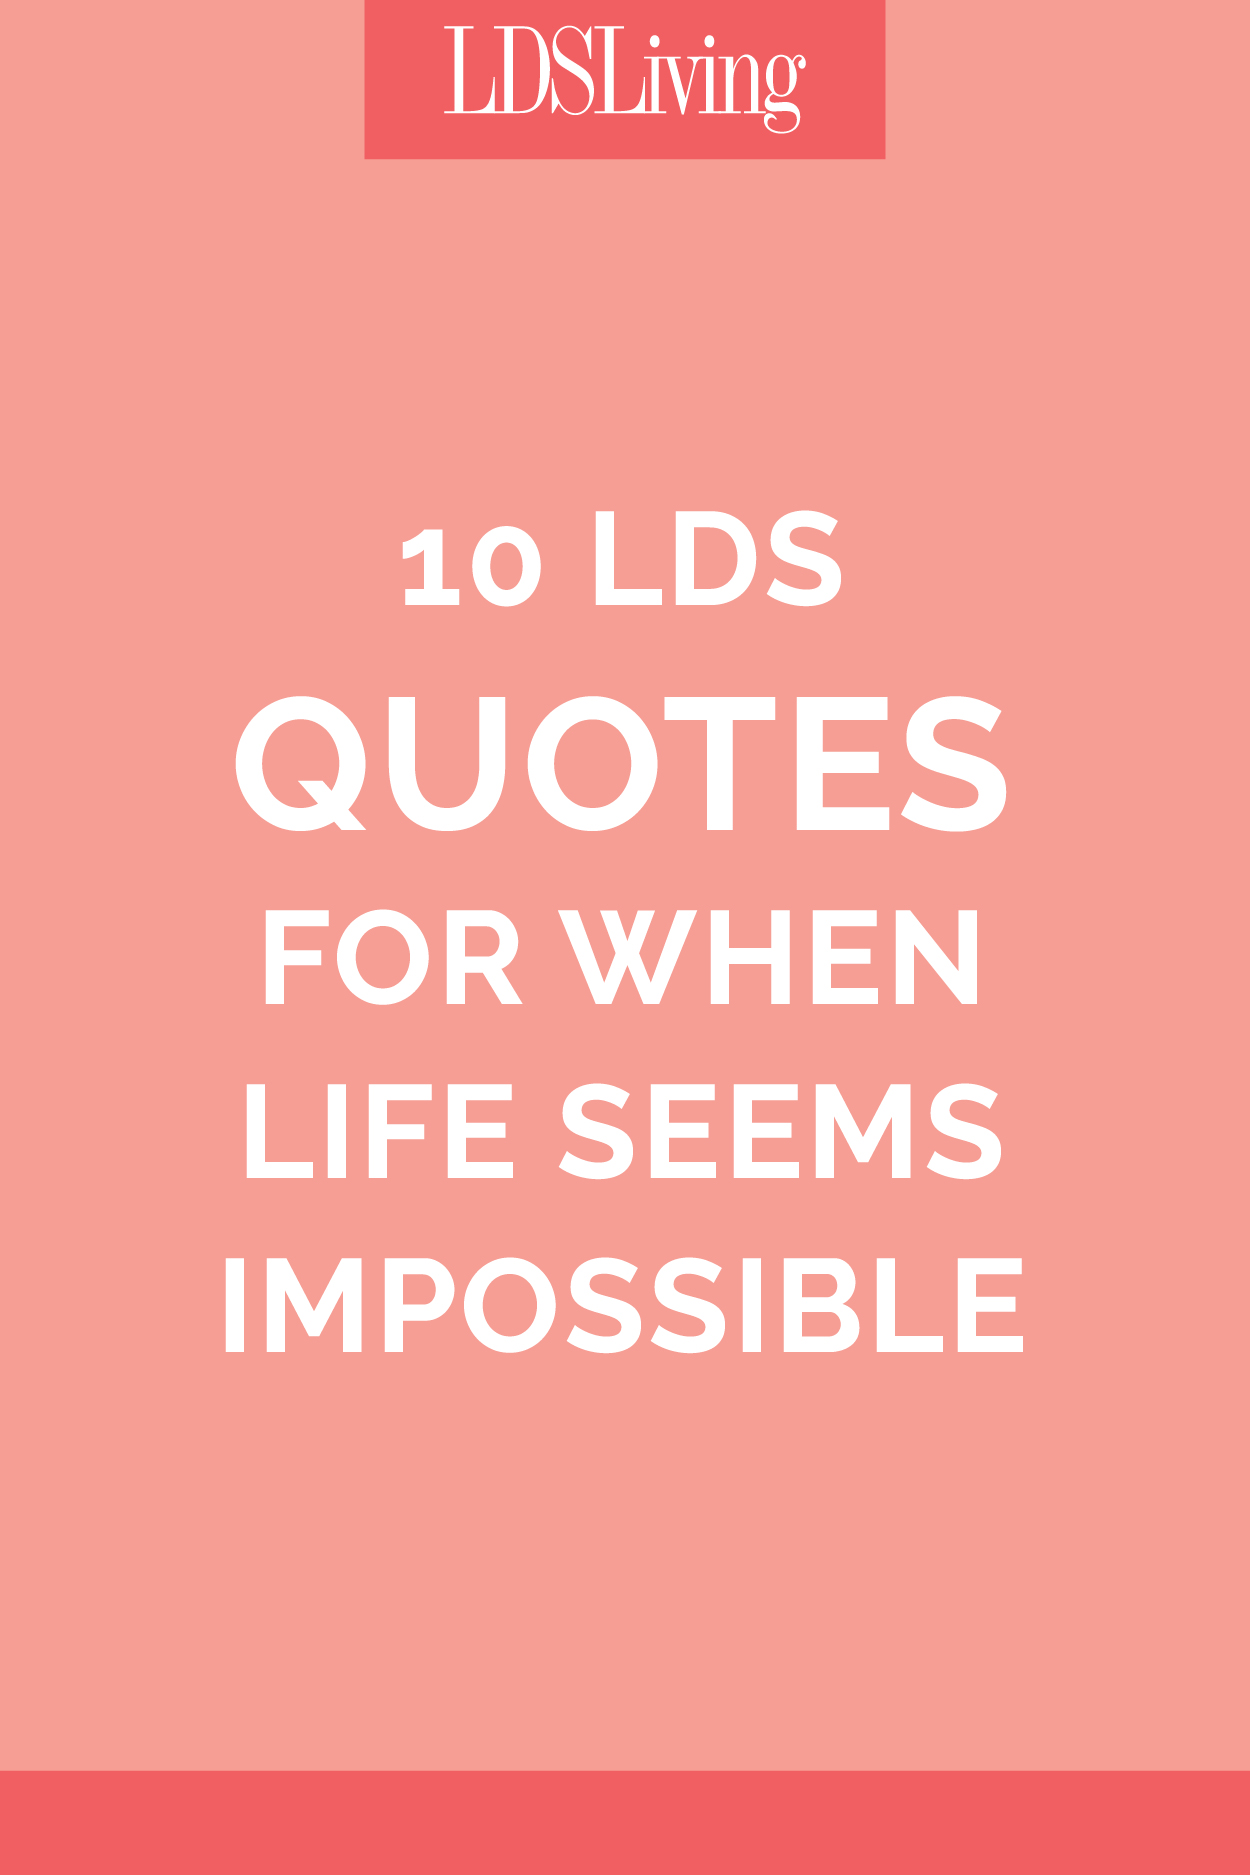 10 LDS Quotes for When Life Seems Impossible